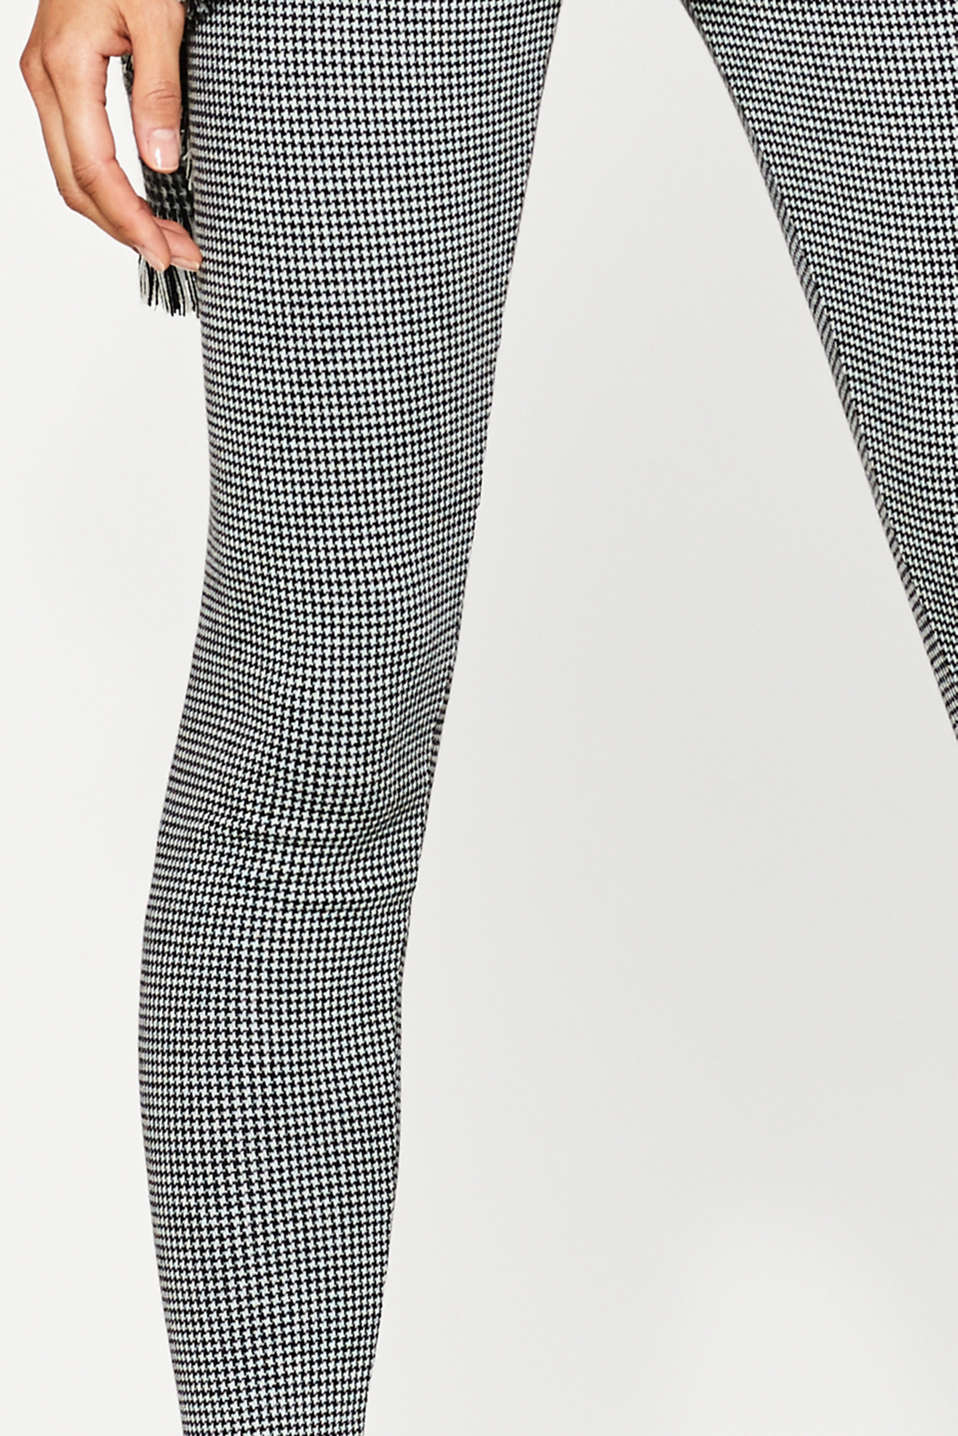 Leggings with timeless houndstooth pattern